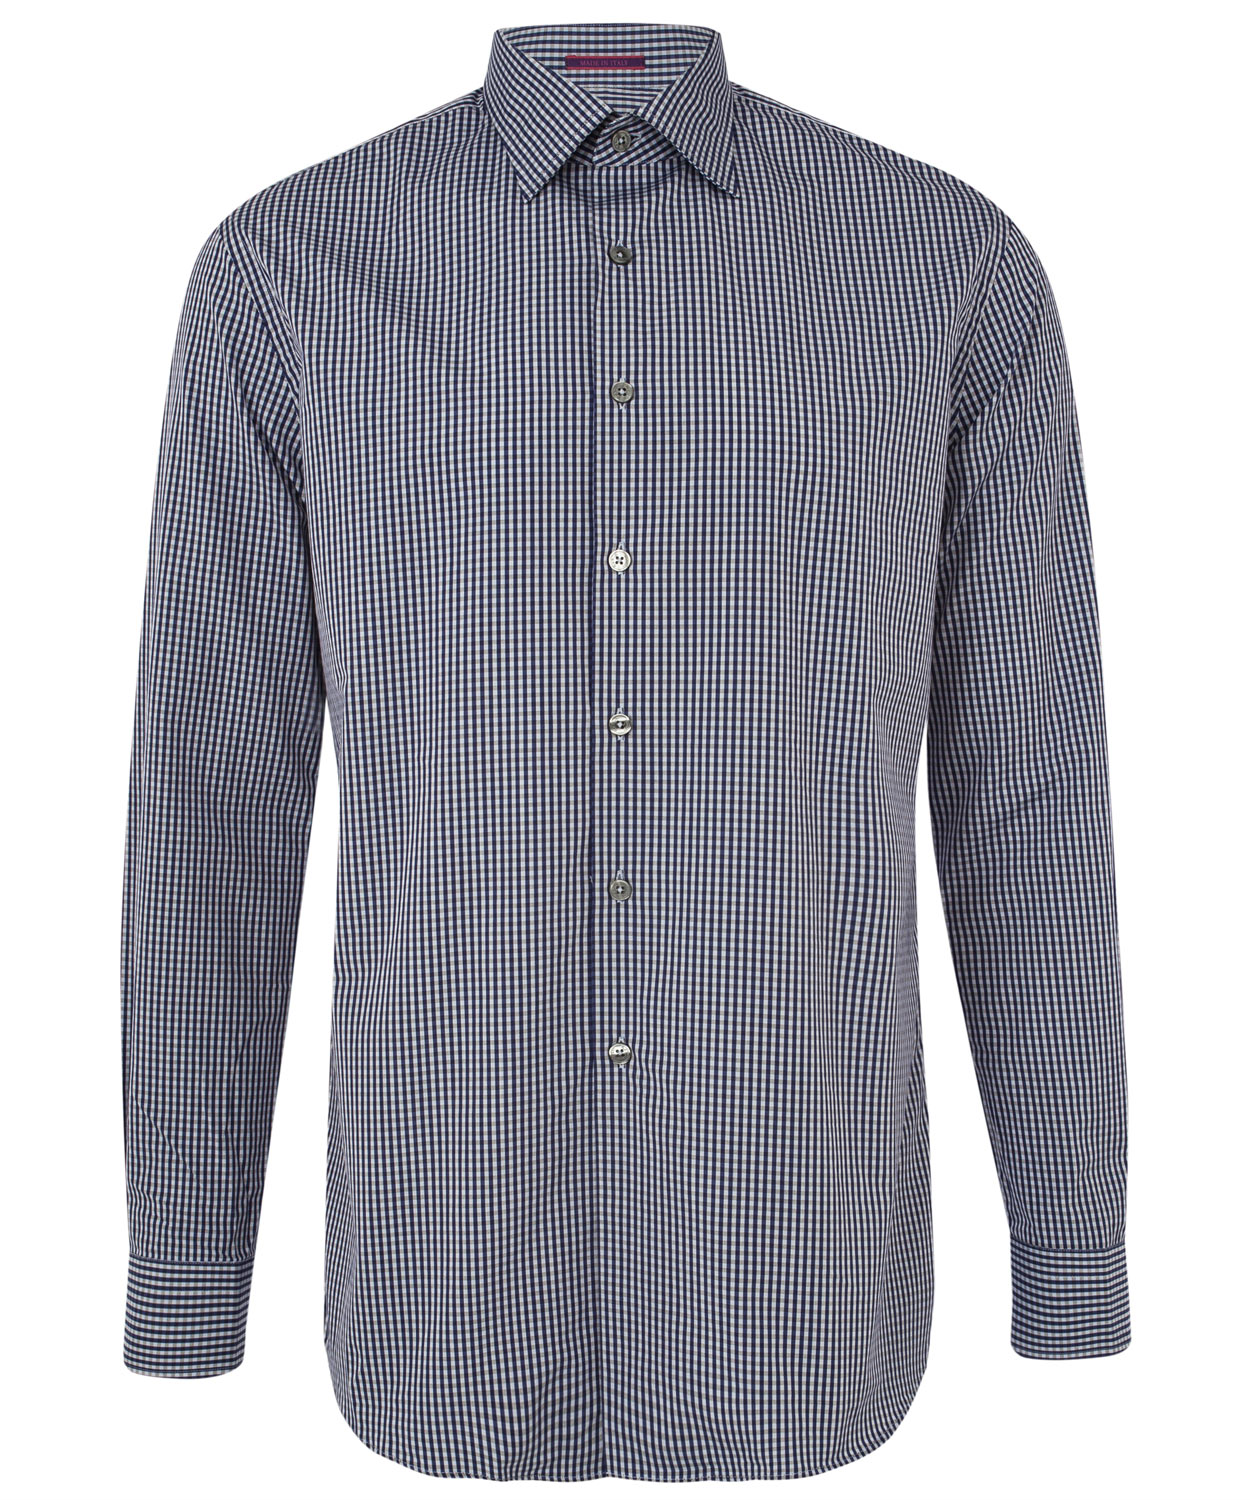 Lyst paul smith navy micro gingham long sleeve shirt in for Navy blue gingham shirt